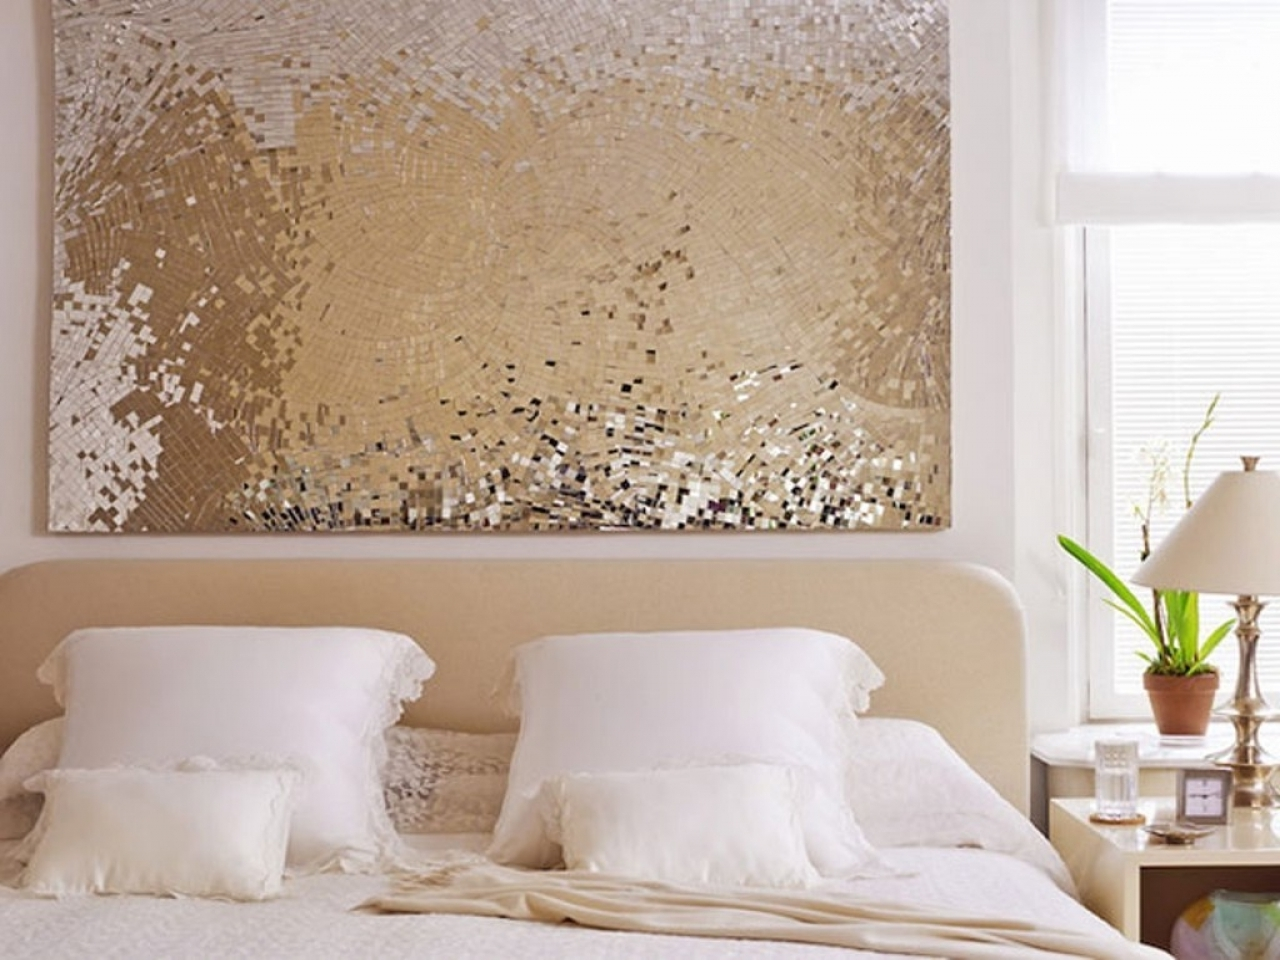 Most Recent Wall Art Ideas For Bedroom, Diy Christmas Wall Decorations Diy For Gold Wall Accents (View 9 of 15)